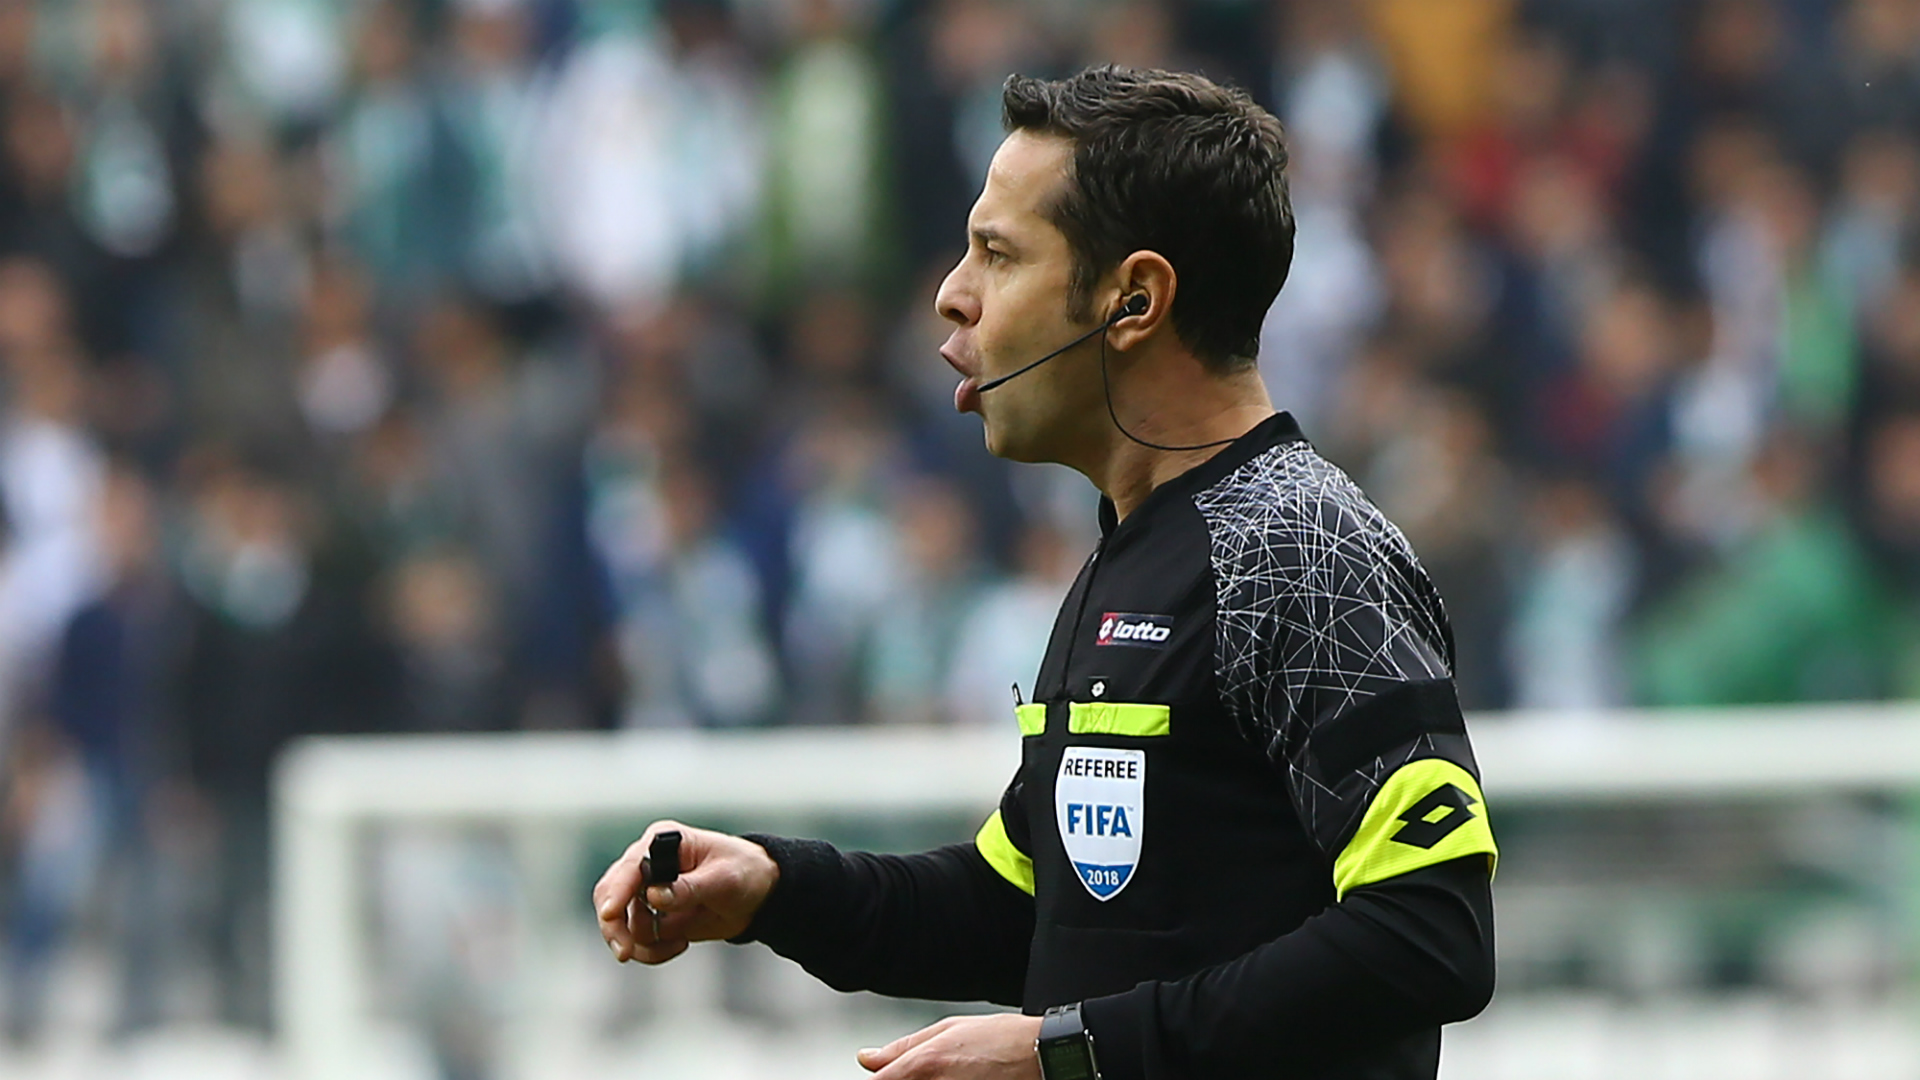 Turkish referee Halis Ozkahya